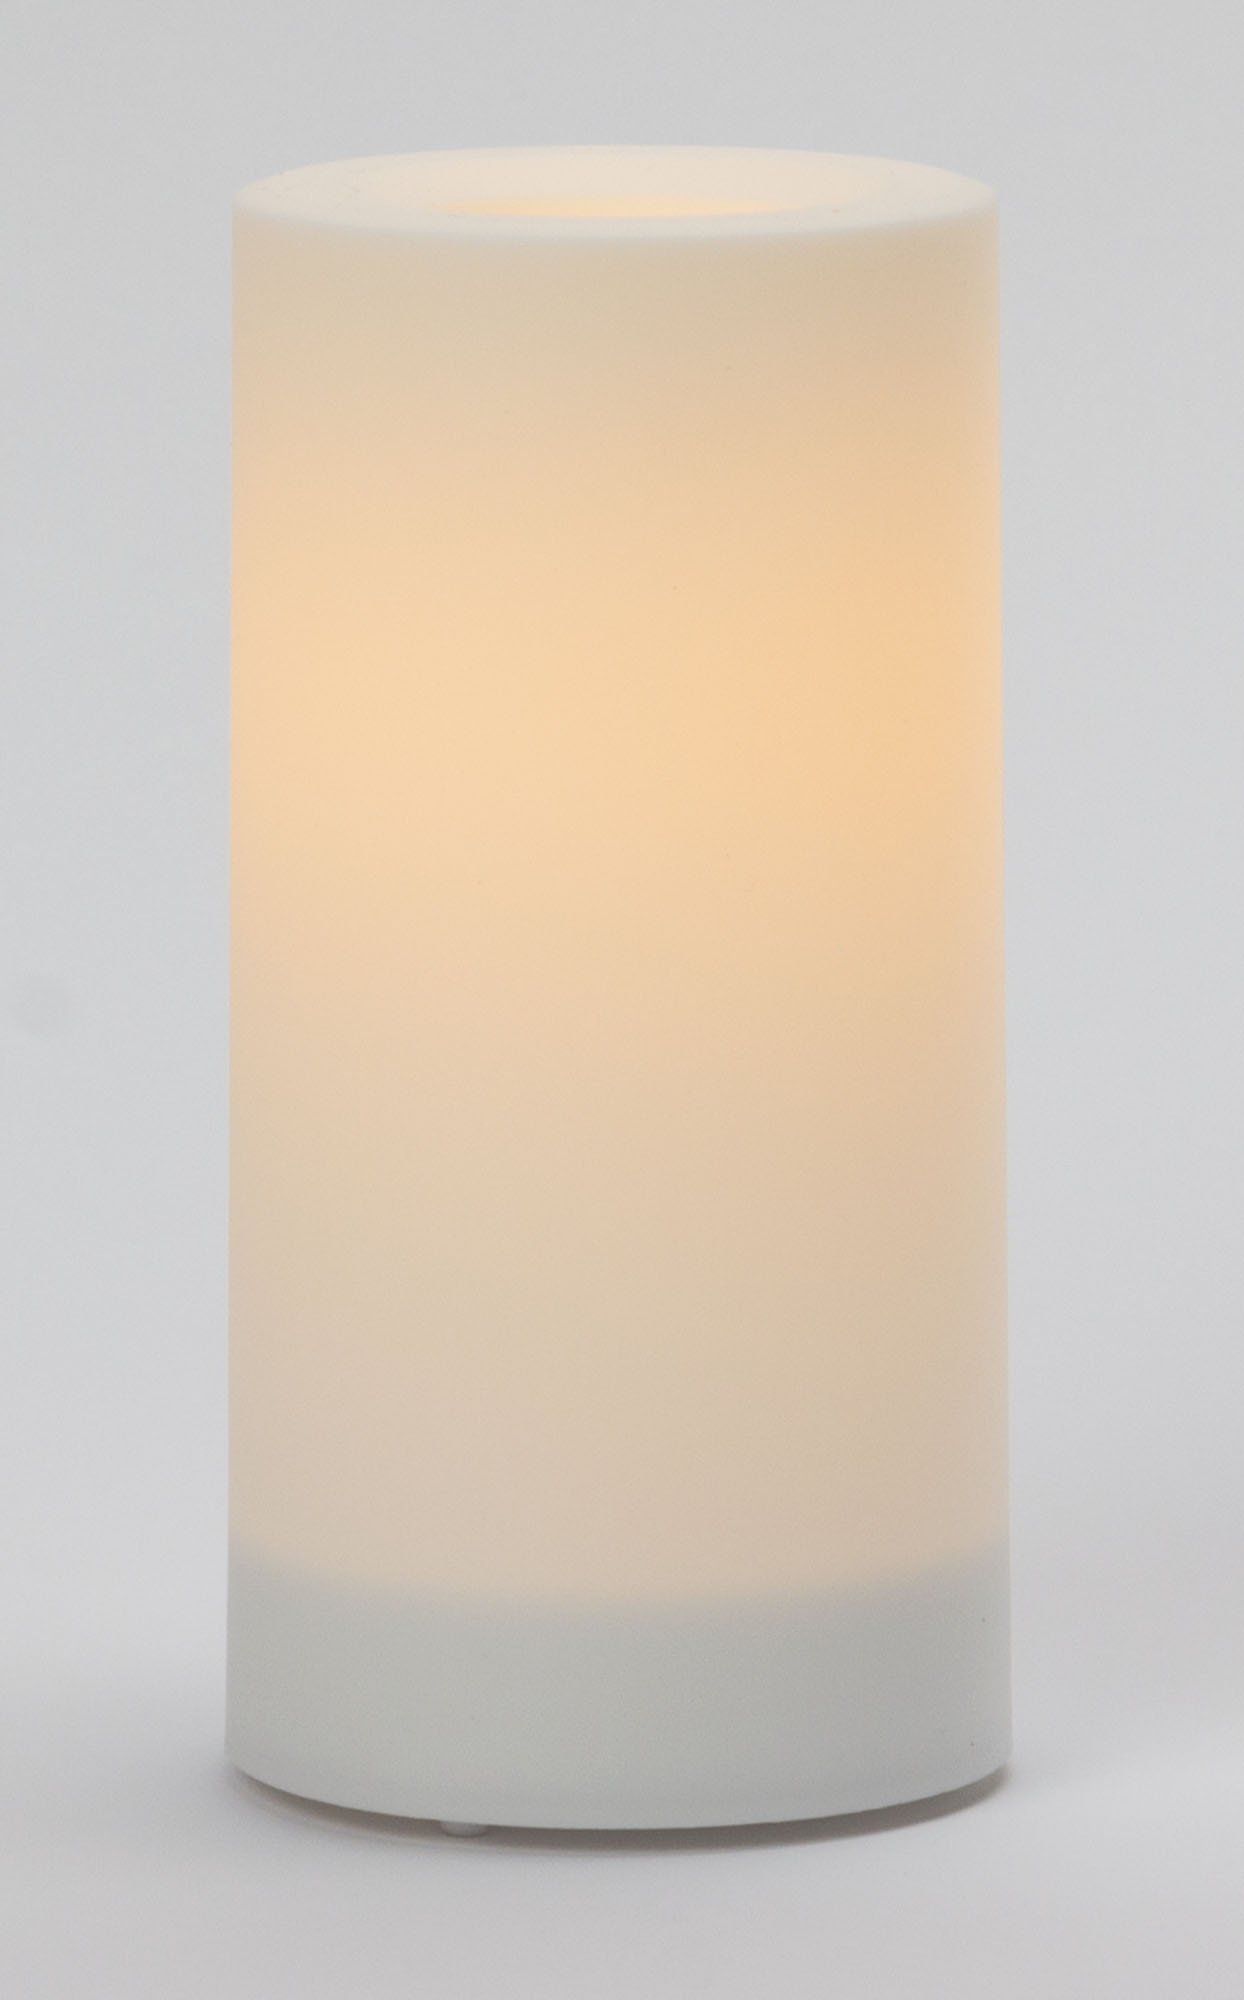 6x3 Inch Flameless Outdoor Pillar Candle with Timer - White